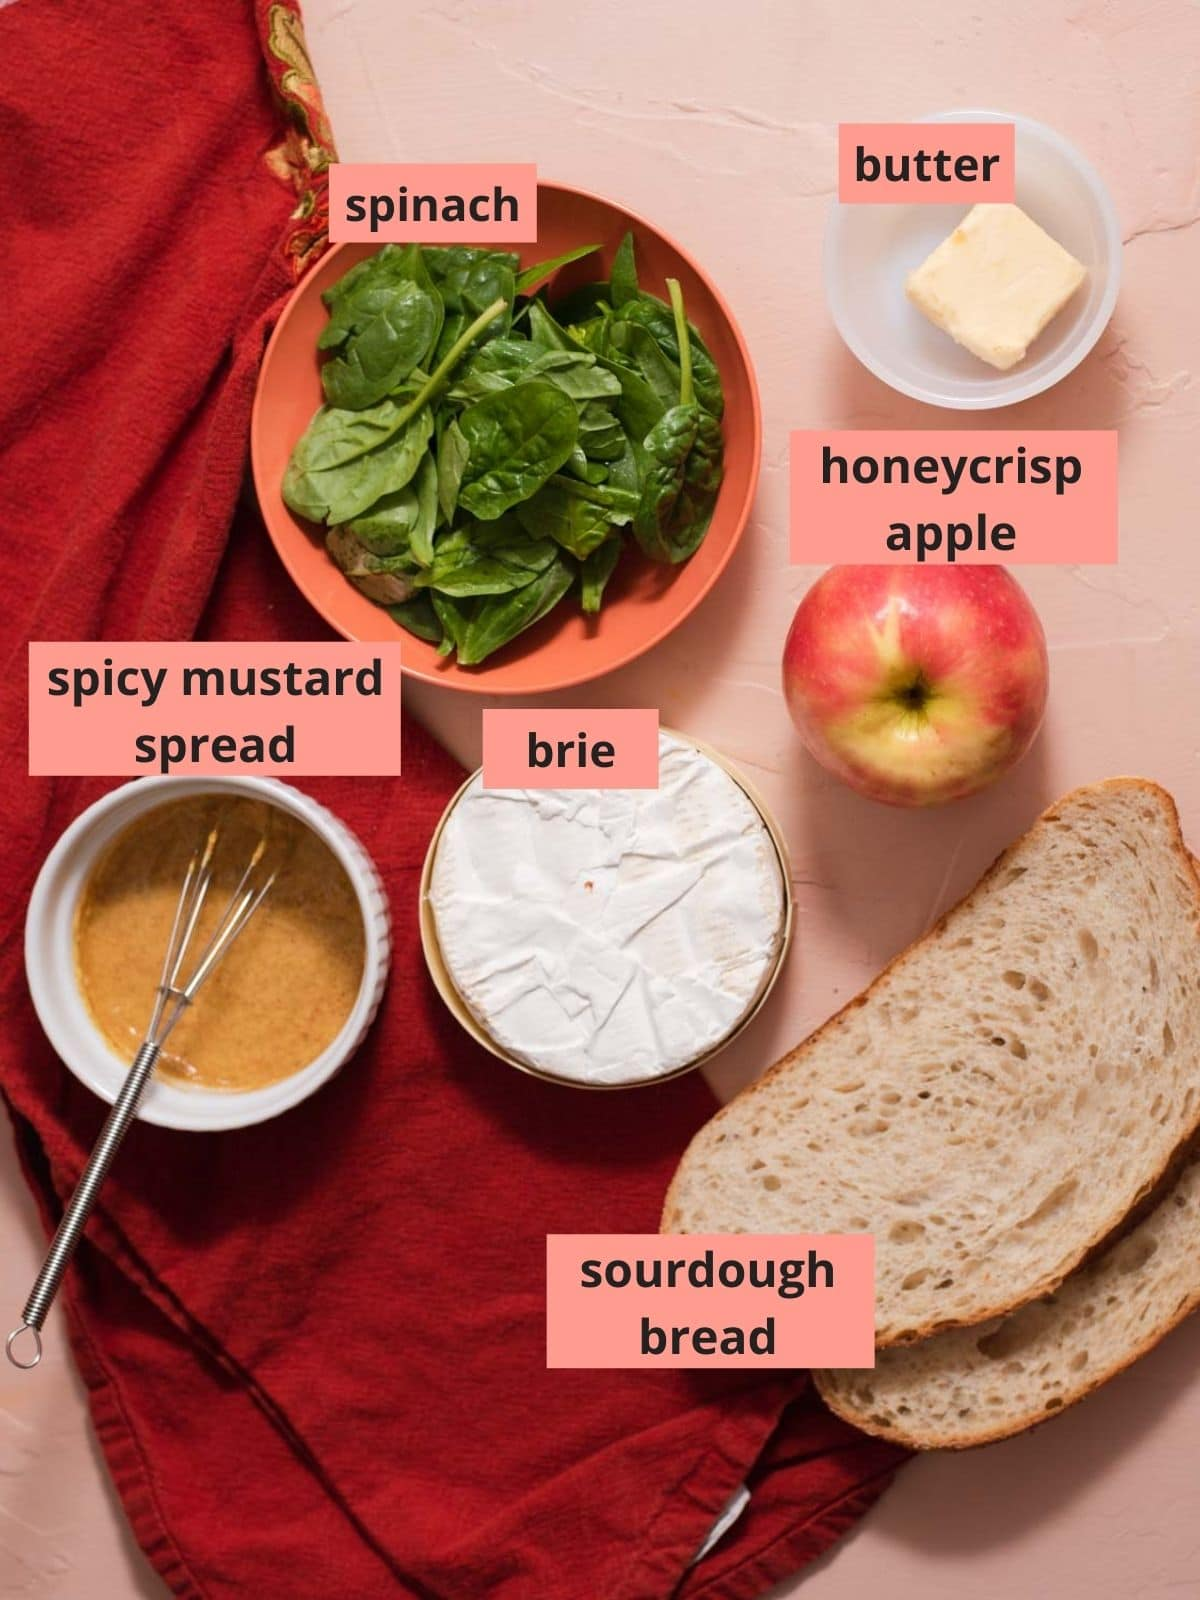 Labeled ingredients used to make grilled cheese